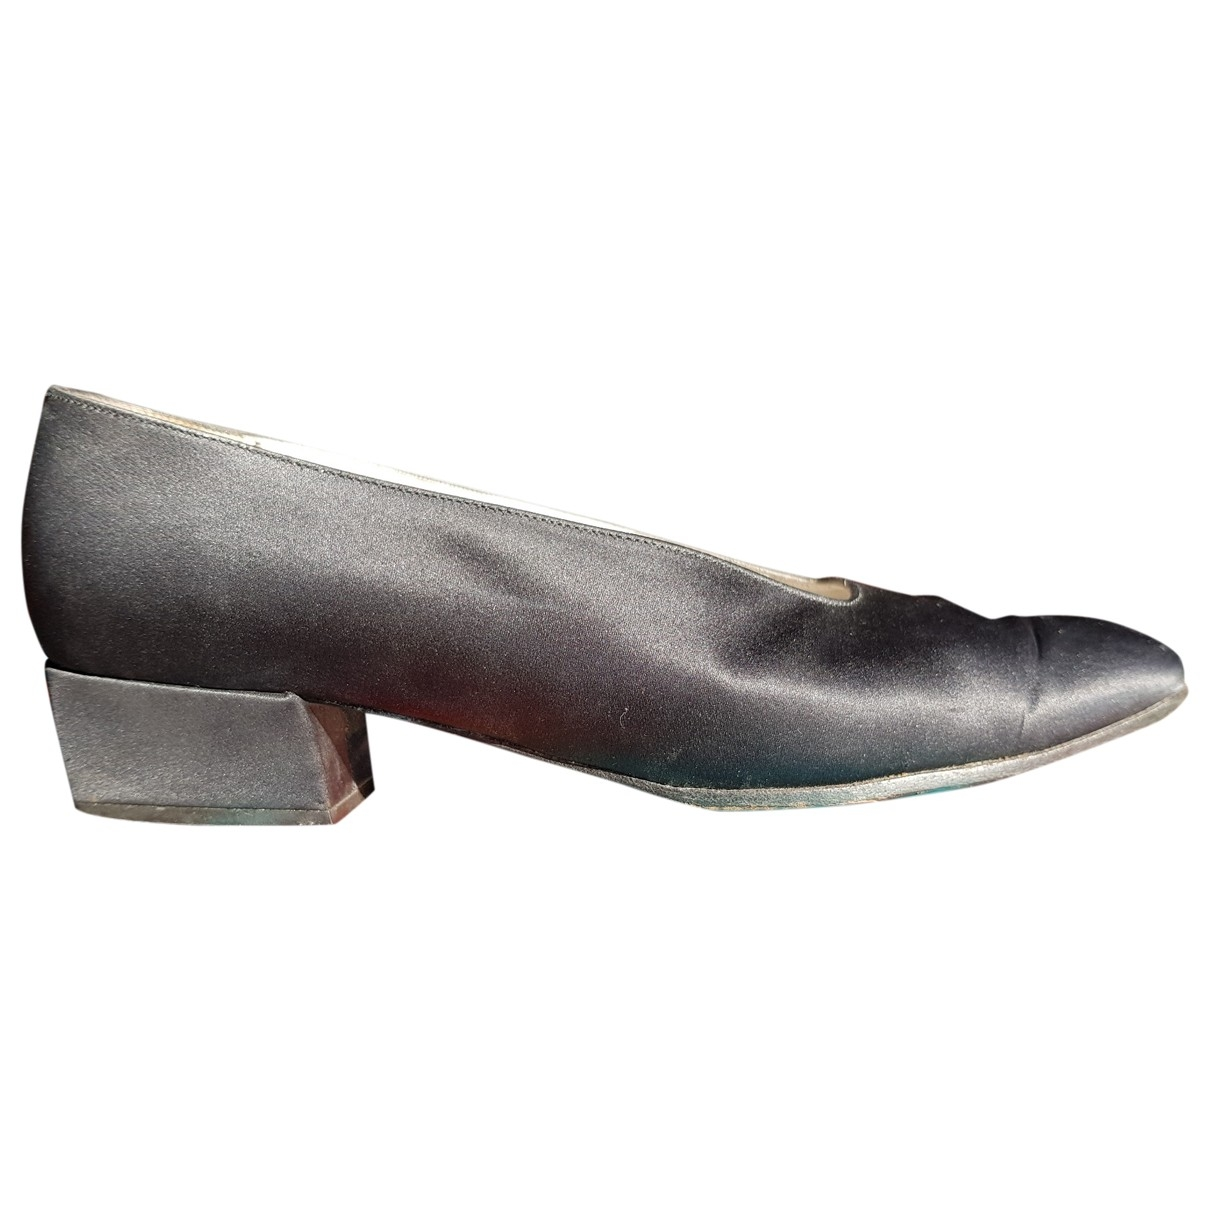 Robert Clergerie \N Black Cloth Heels for Women 5 UK